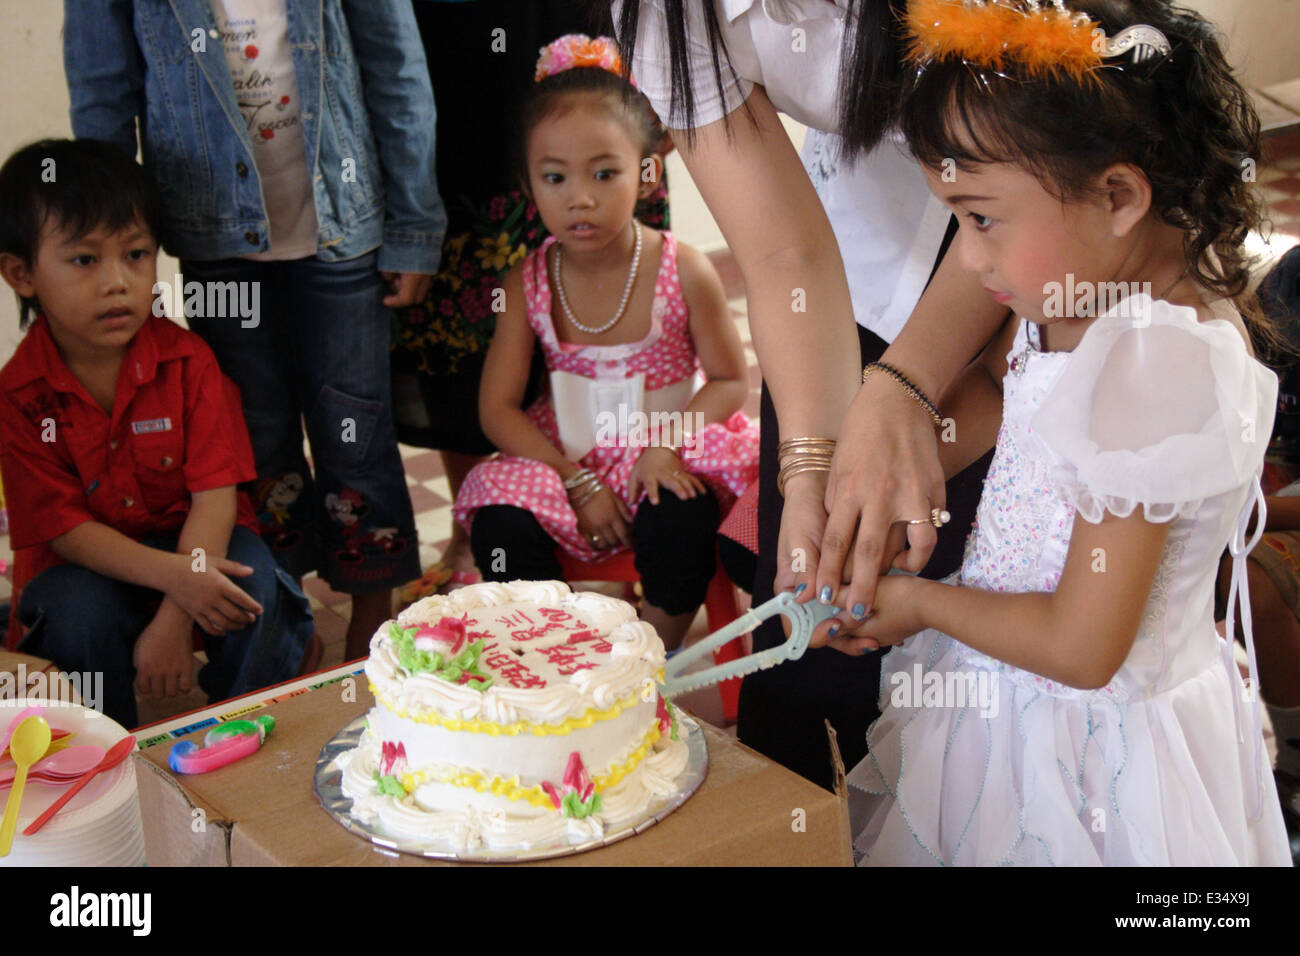 A Teacher Is Helping A 6 Year Old Asian Girl Cut Her Birthday Cake